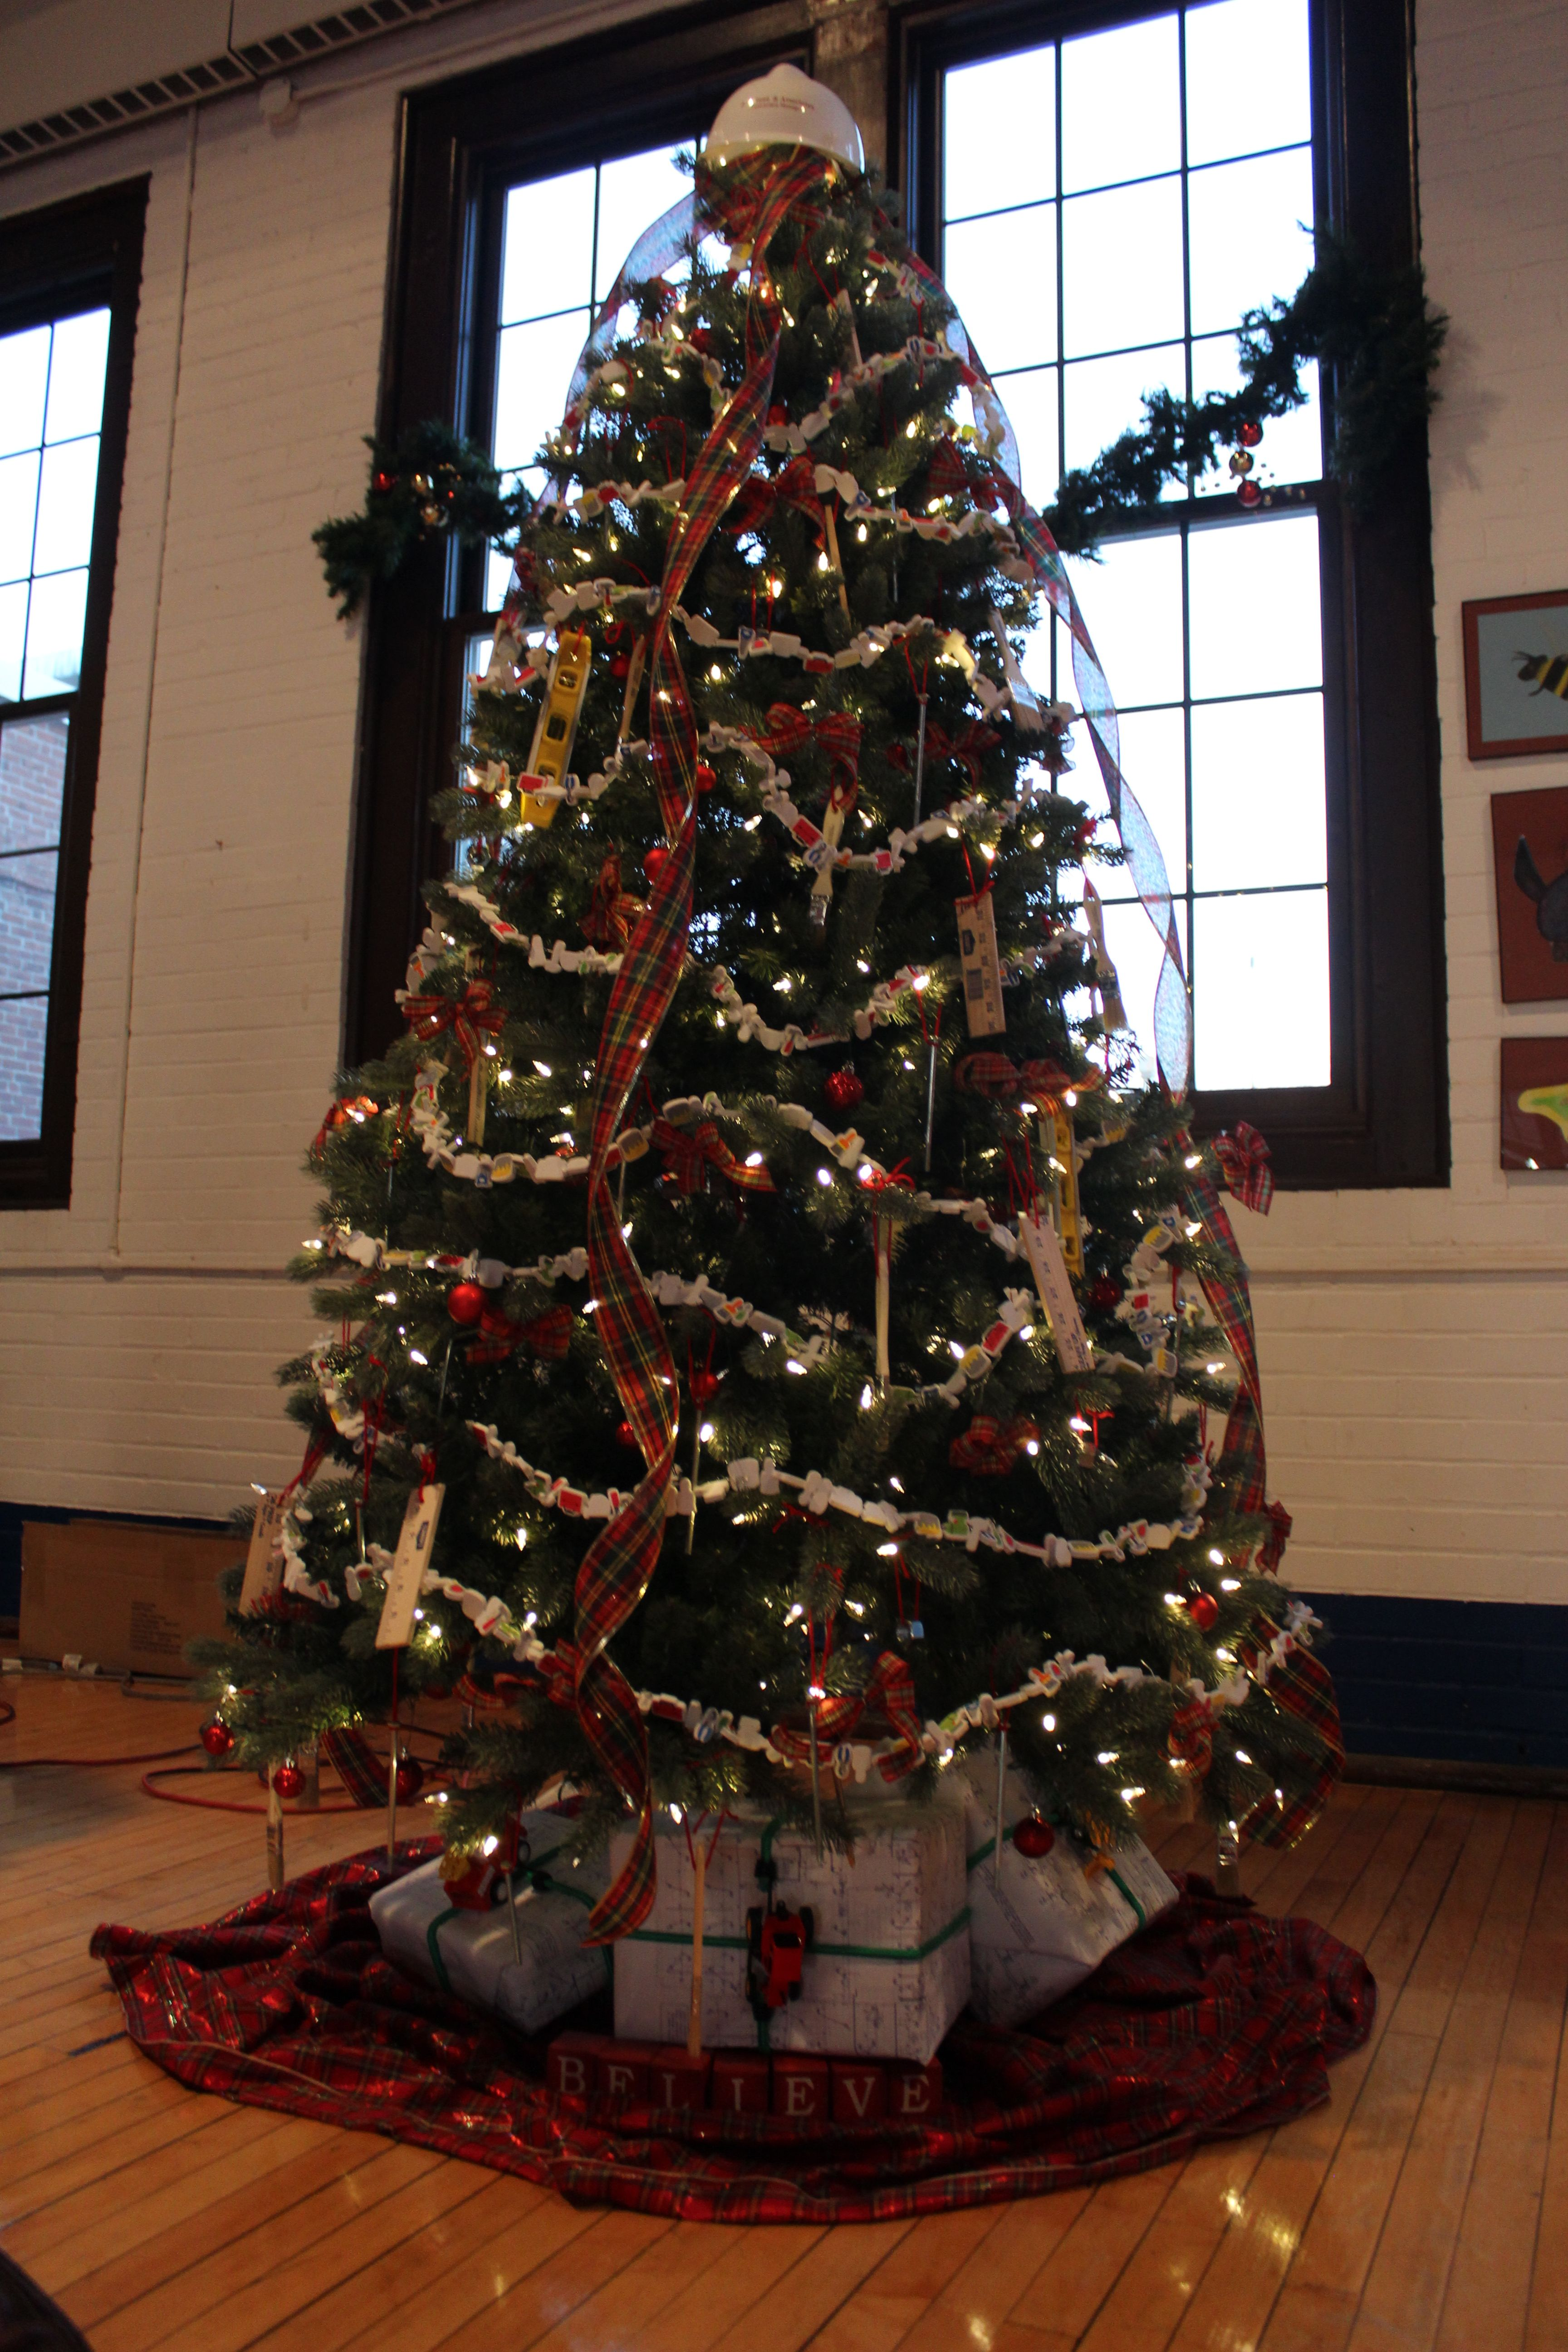 The Jcares Team Decorated And Donated A Construction Themed Tree That Will Be Raffled Off For 2012 Winterfest At The Mass Hospital School